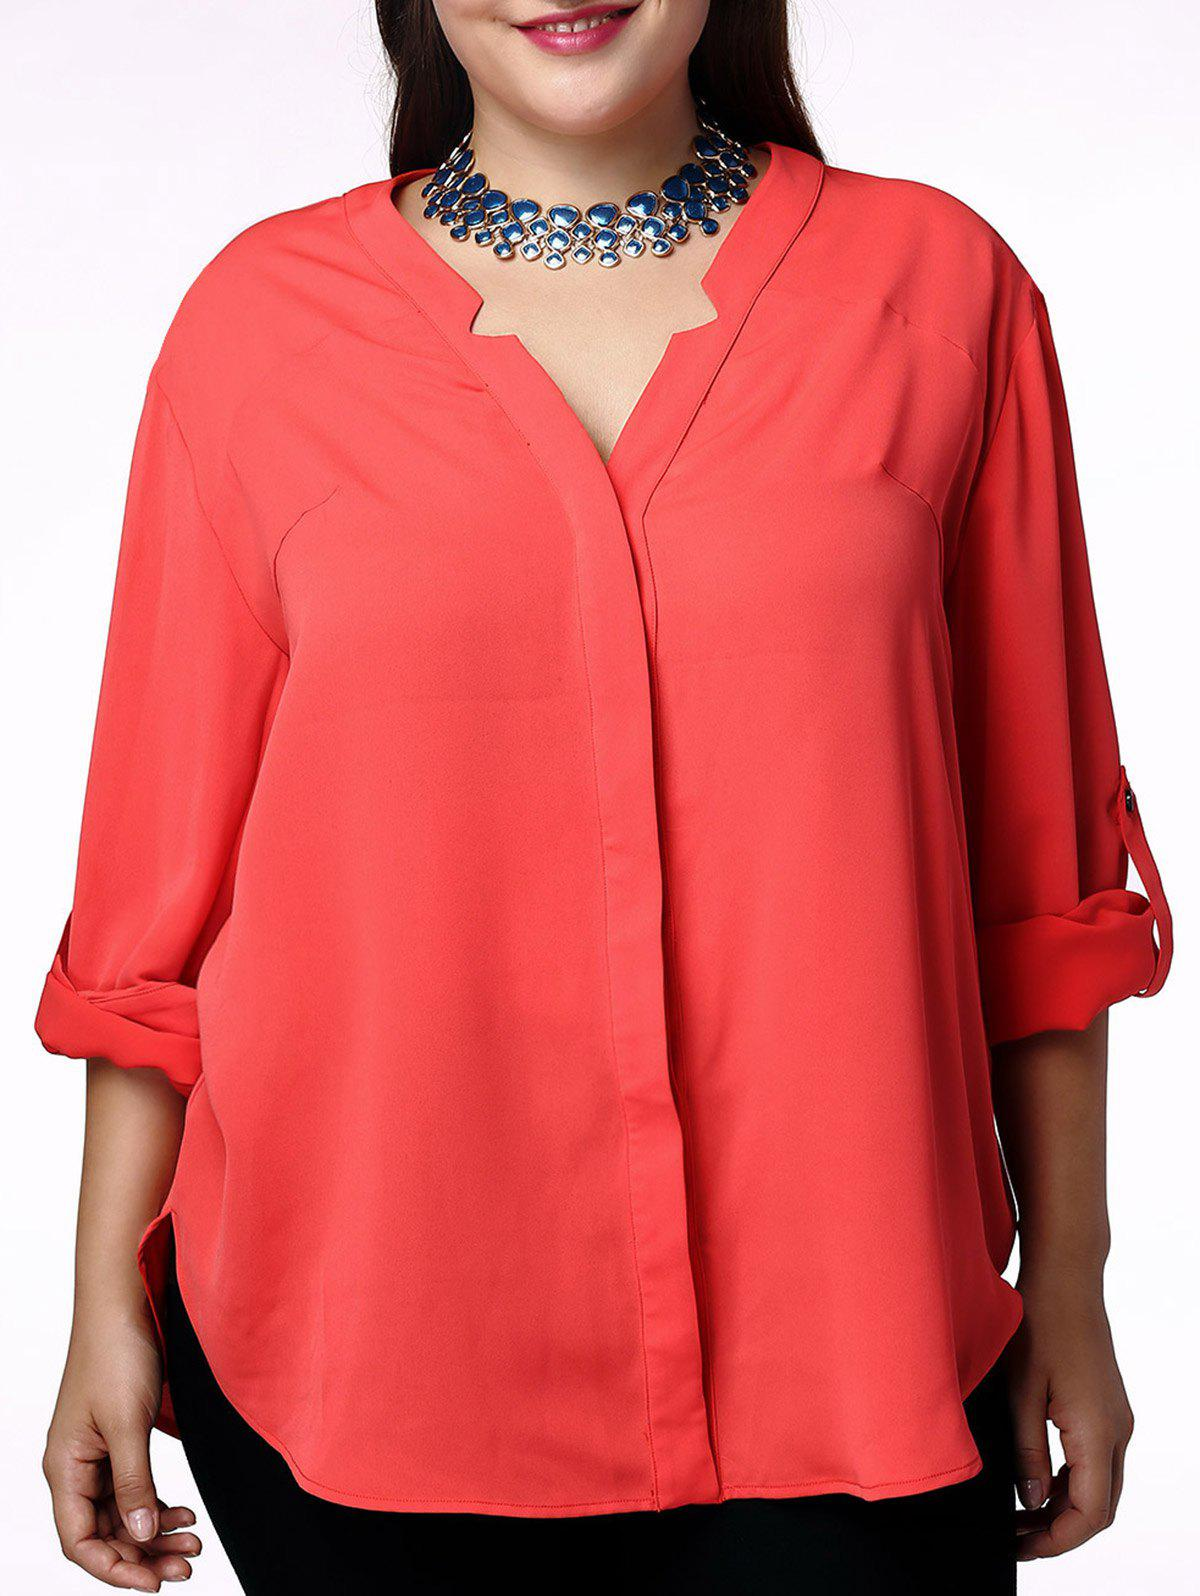 Elegant Solid Color V-Neck 3/4 Sleeve Plus Size Blouse For Women - JACINTH 4XL